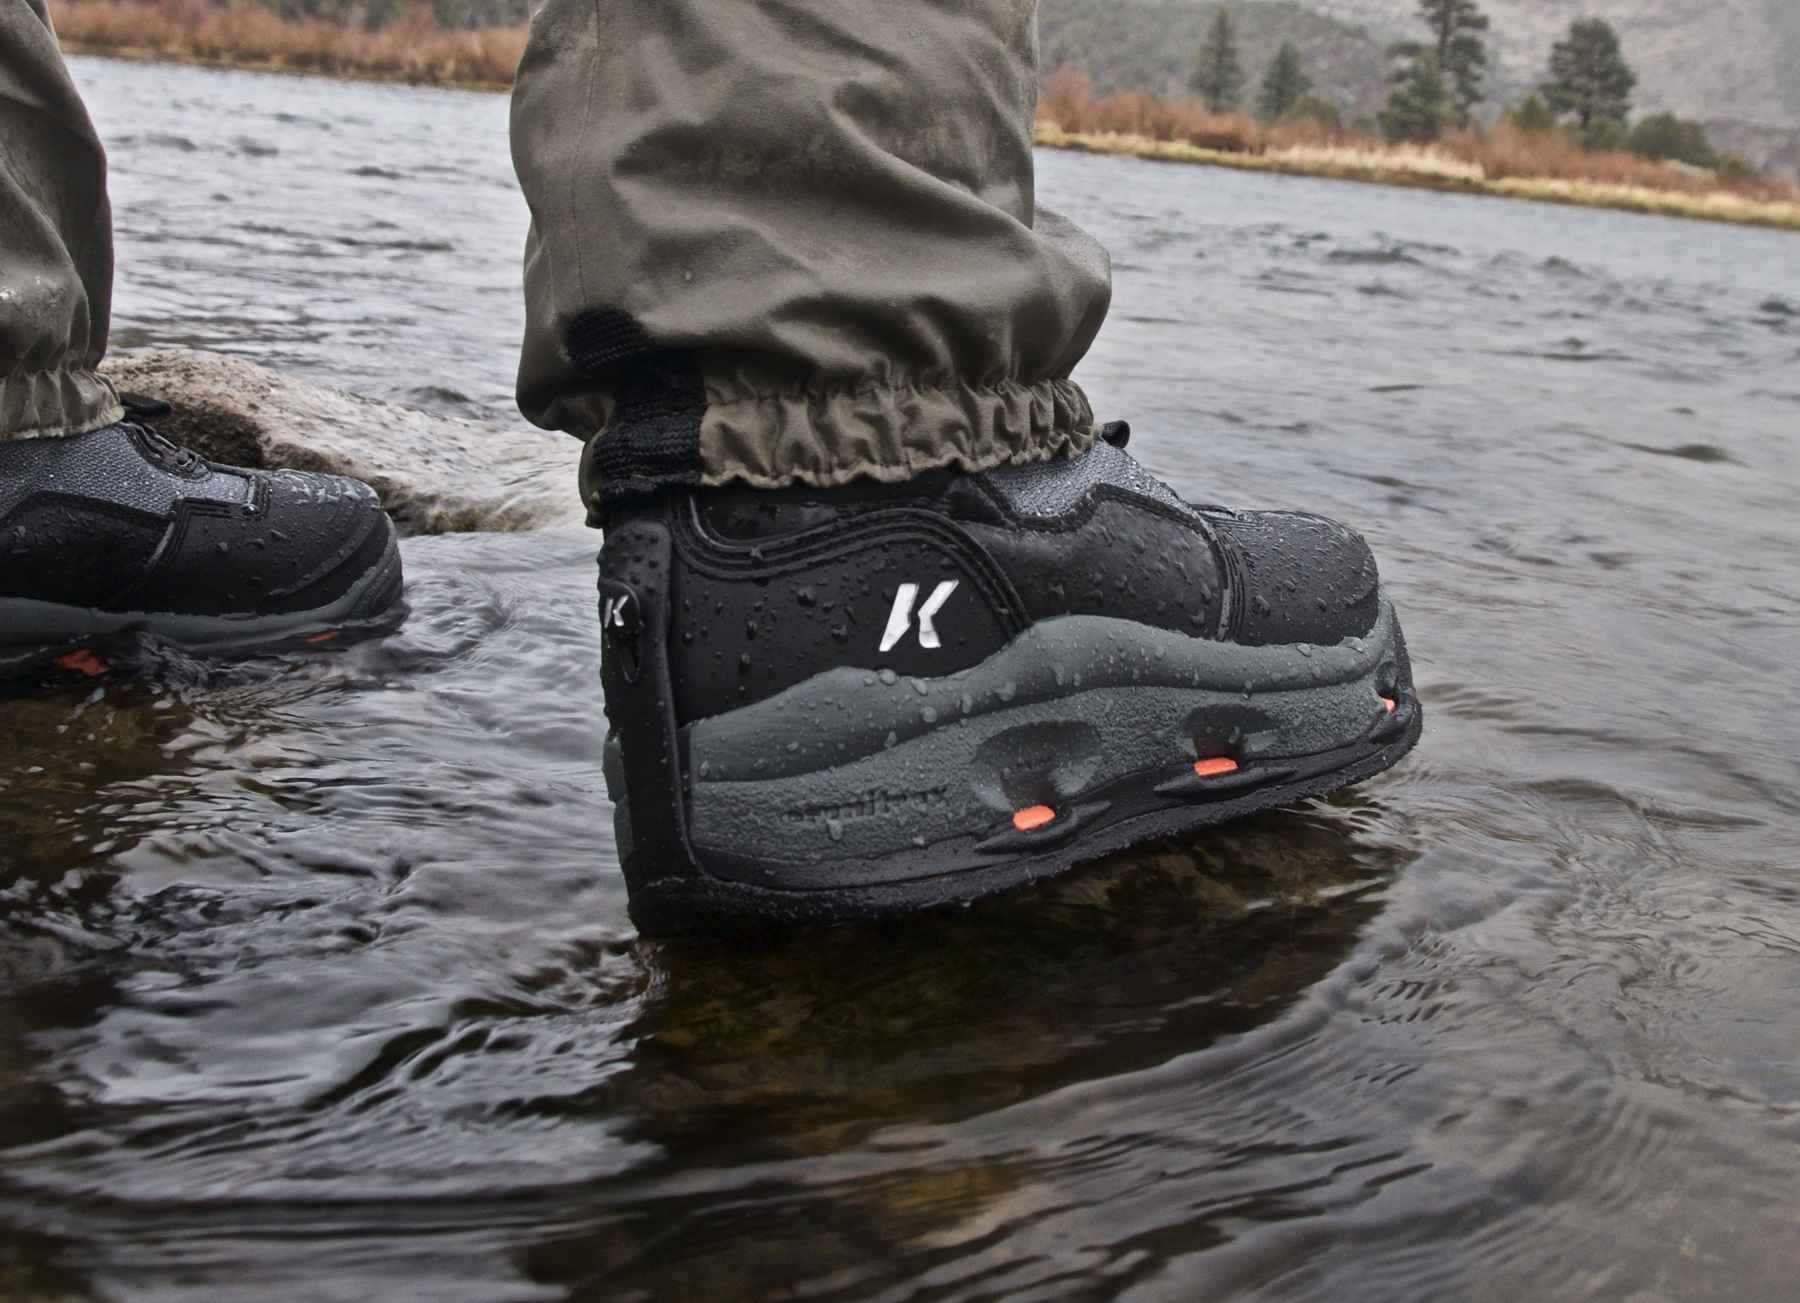 Korkers Darkhorse Wading Boot With Boa Adapatable Traction